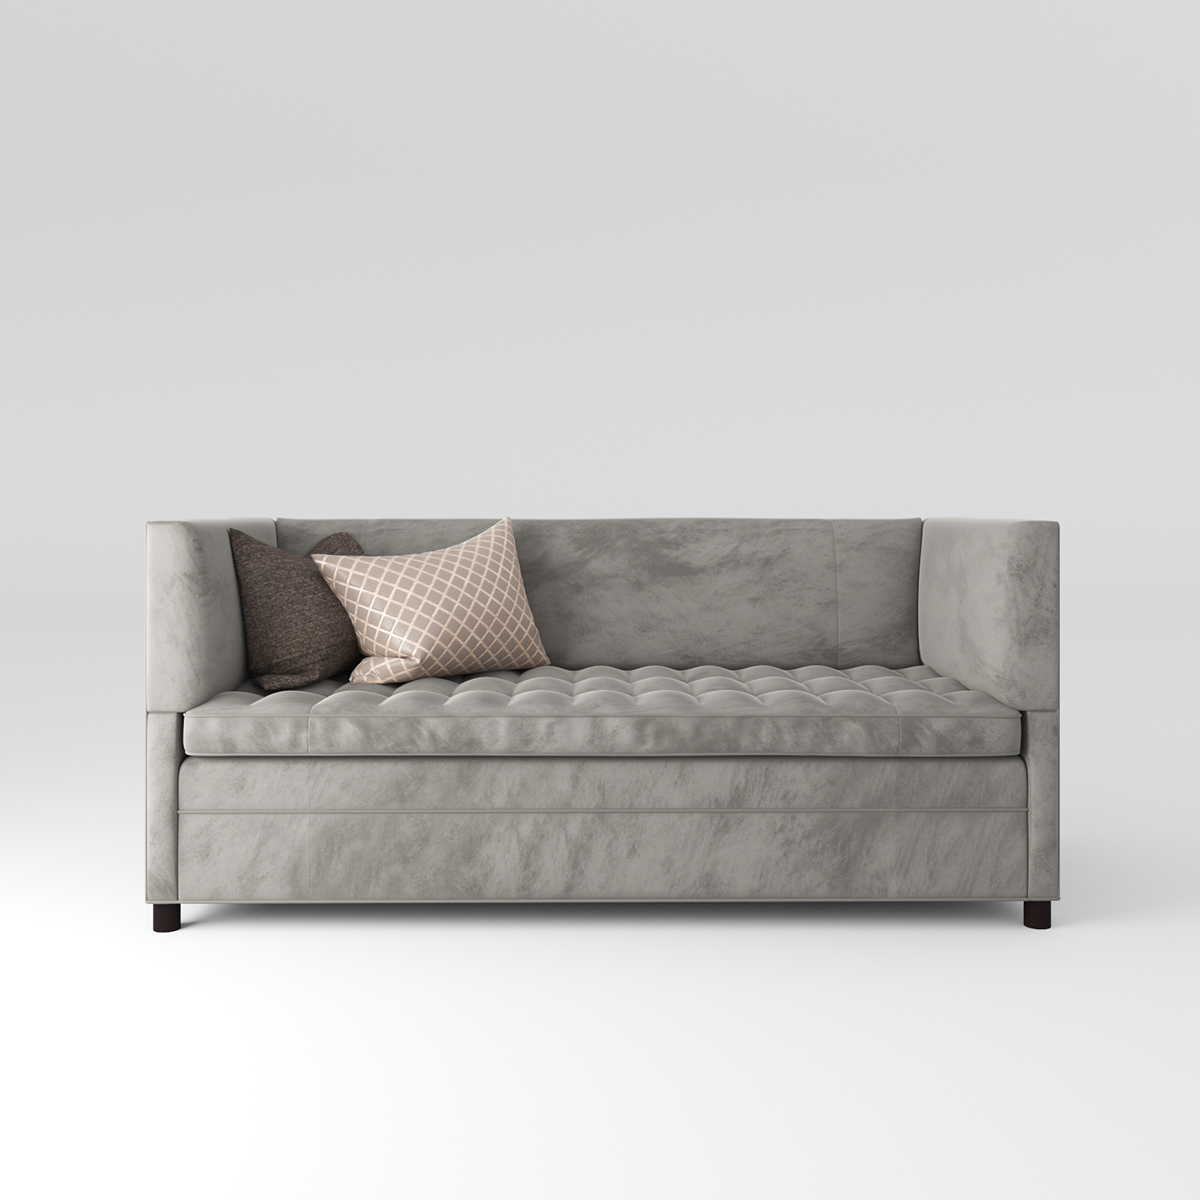 Outstanding Old Hickory Tannery Strauss Sofa On Behance Cjindustries Chair Design For Home Cjindustriesco